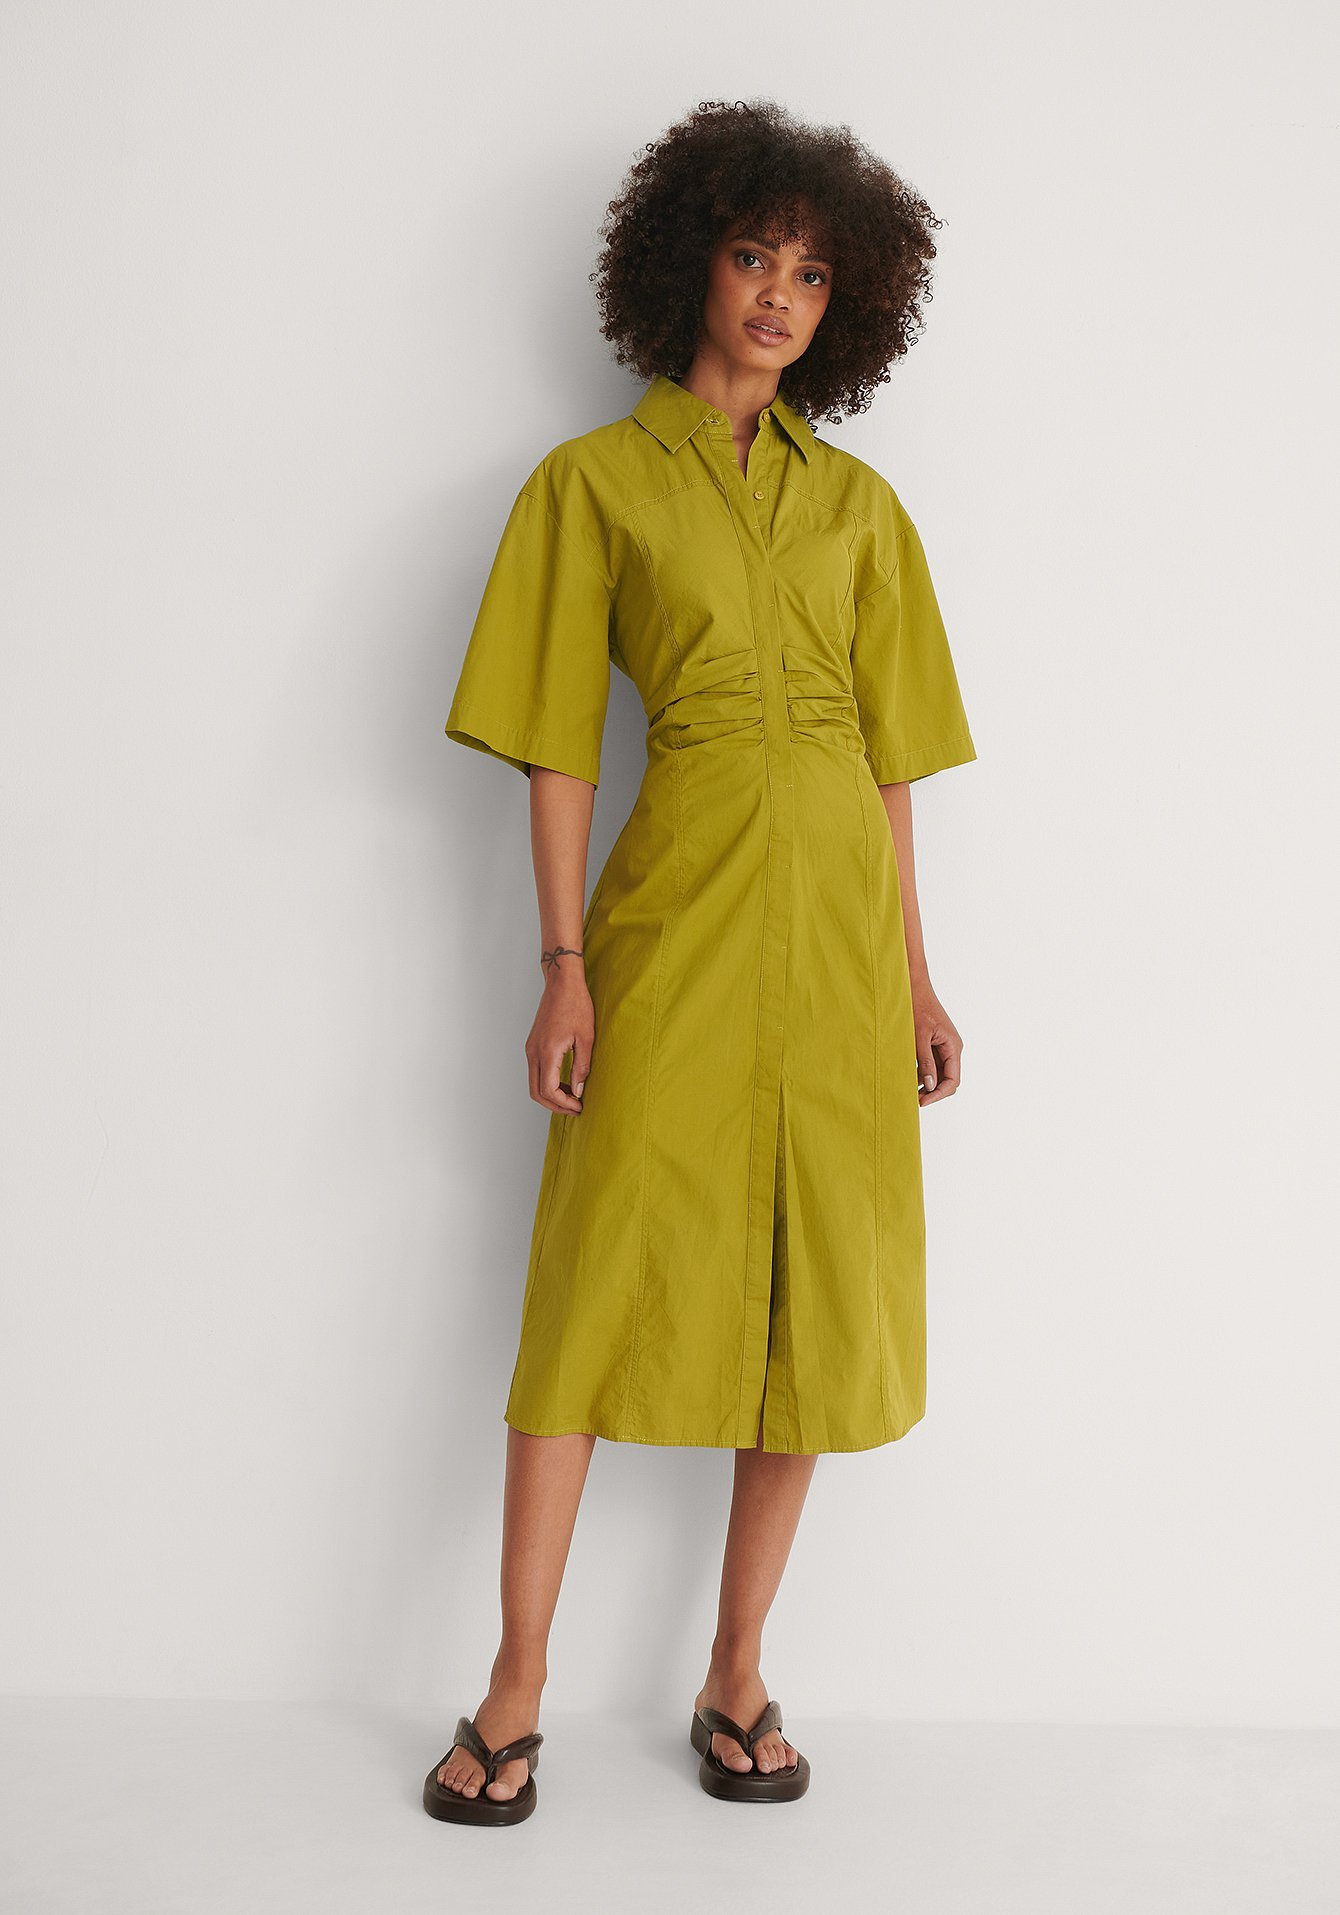 Green Short Sleeve Gathered Midi Dress